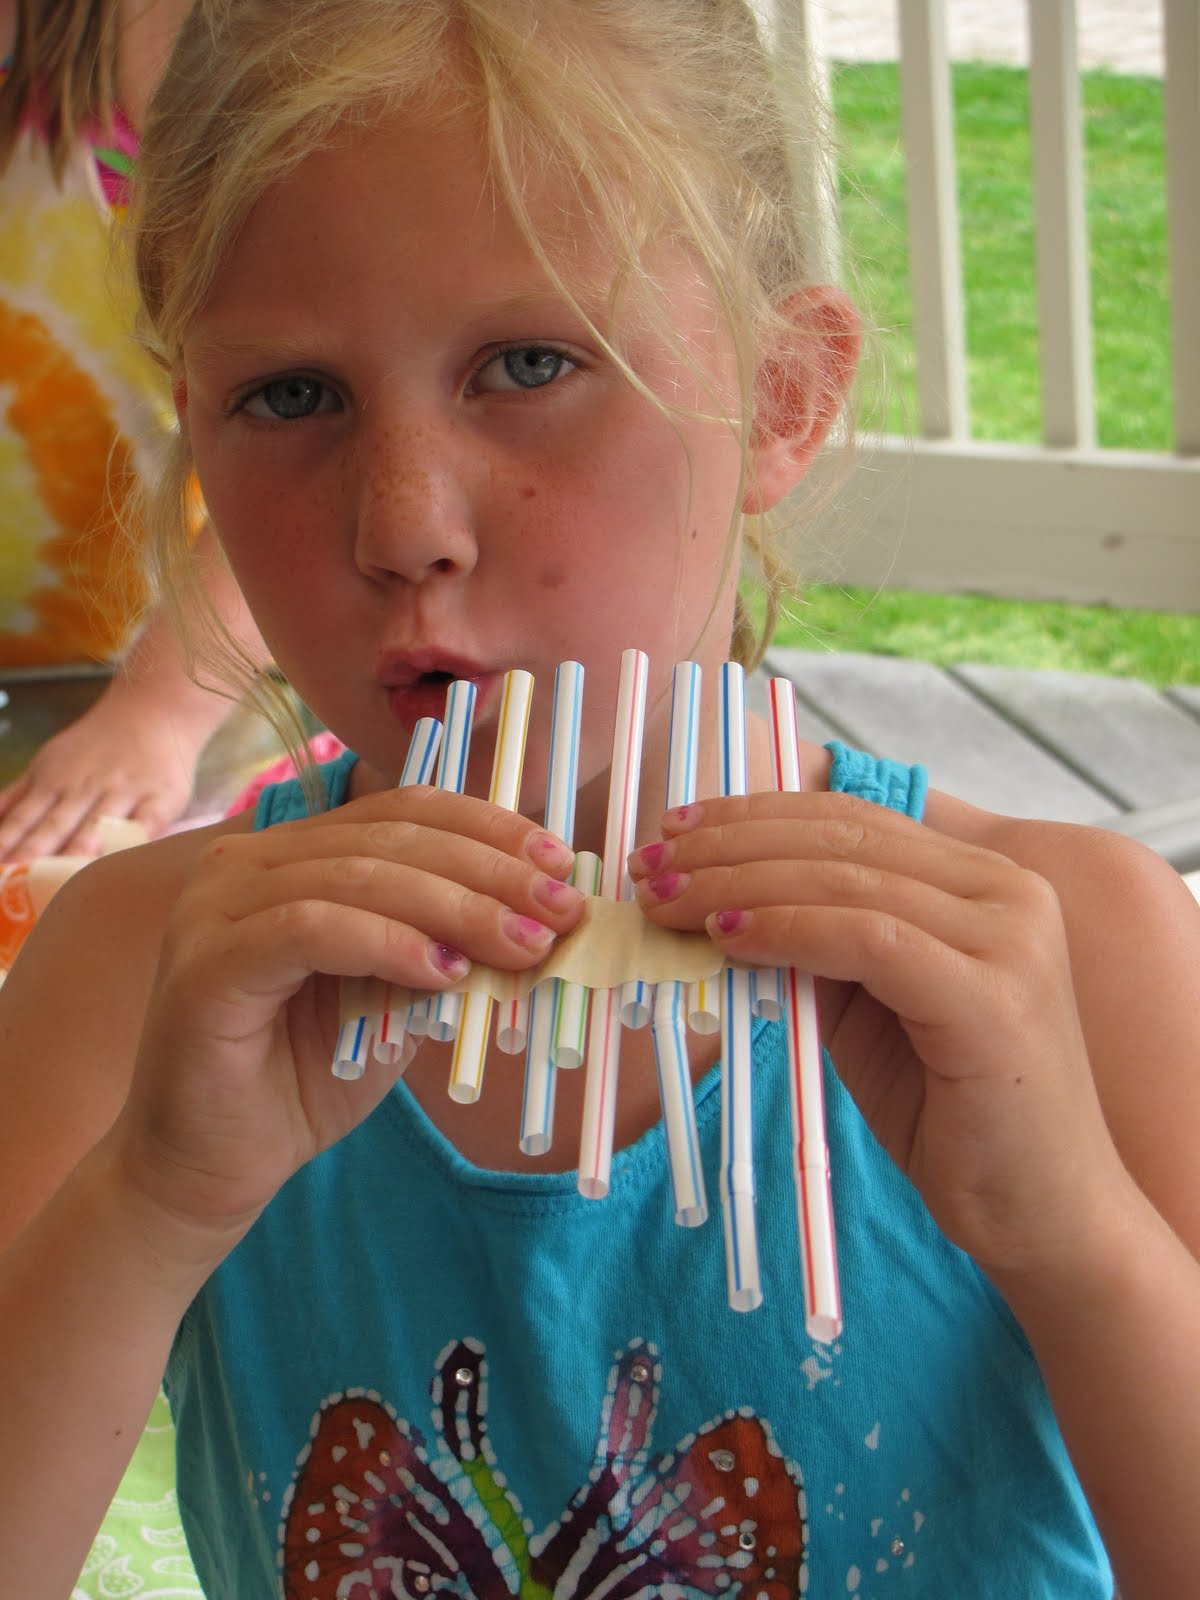 James family life making homemade musical instruments